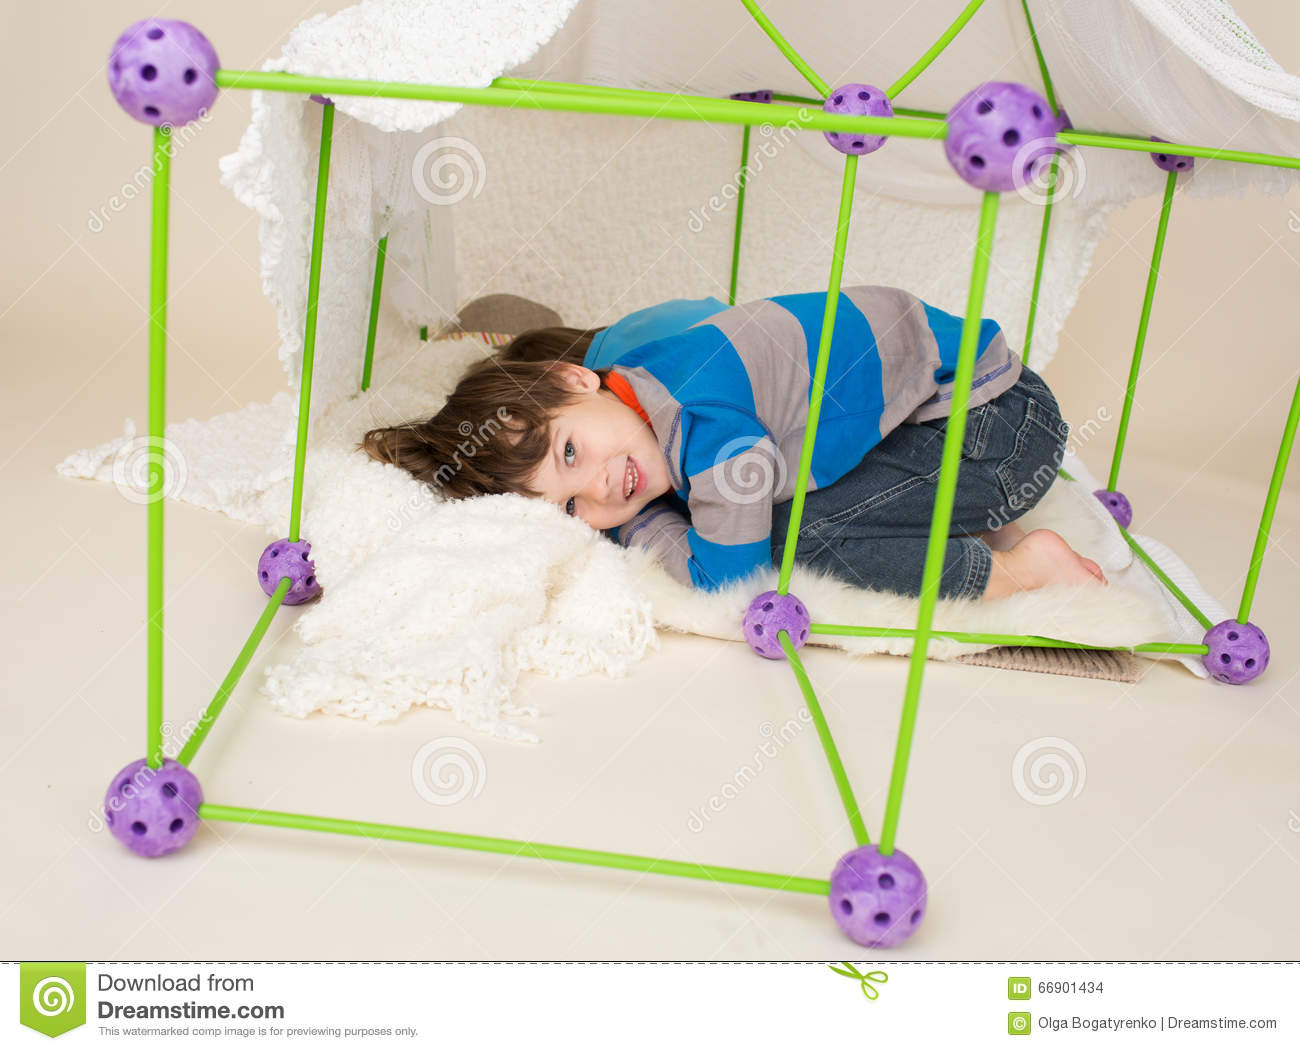 Kids Playing with Tent Pretend Fort & Kids Playing With Tent Pretend Fort Stock Photo - Image of playing ...